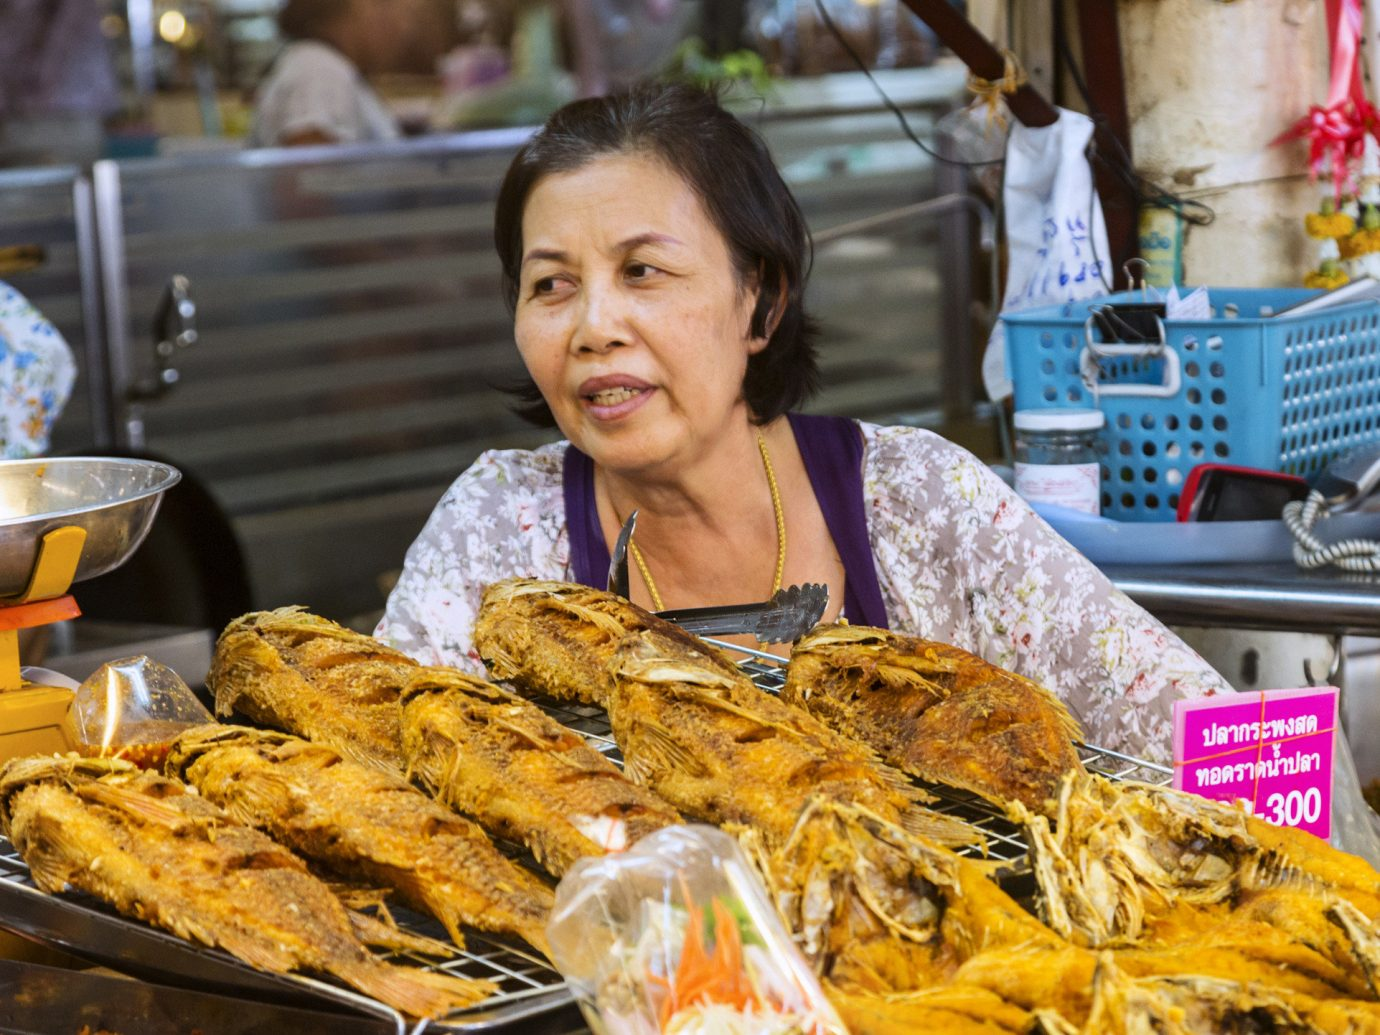 Food + Drink food person dish public space meal Seafood fish market street food cuisine sense asian food snack food